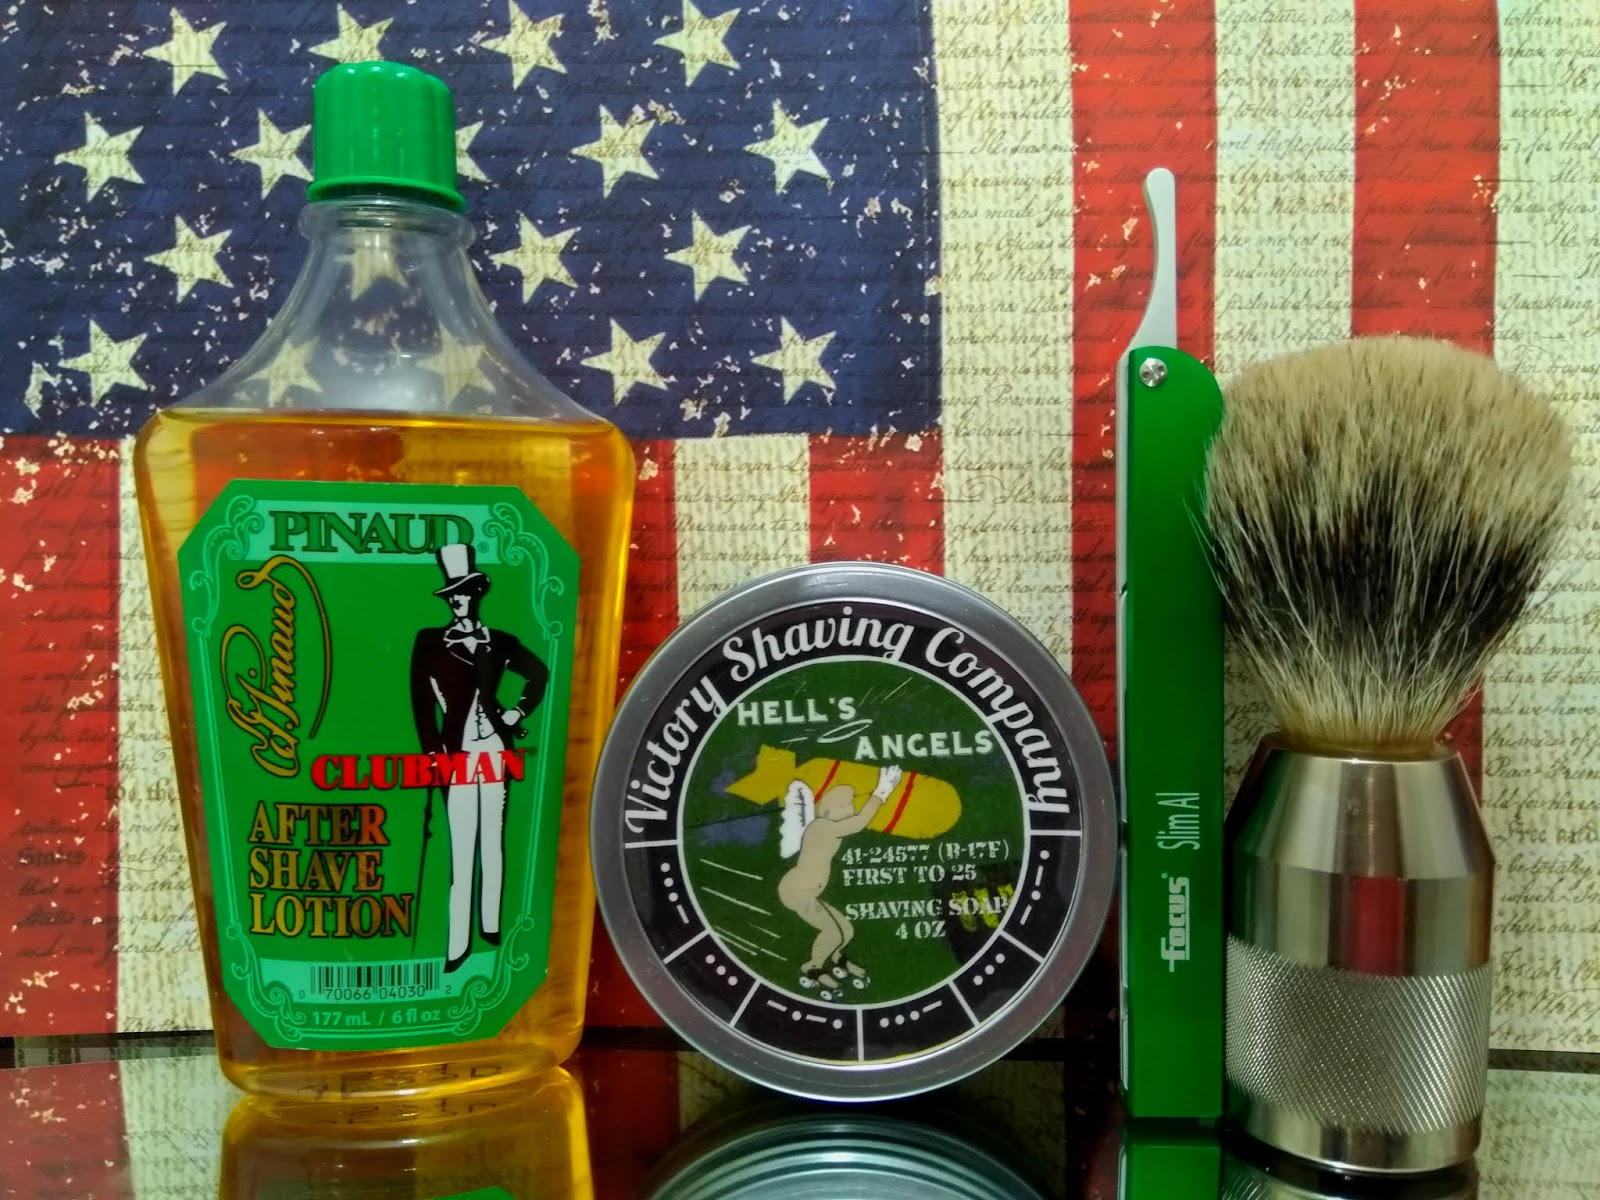 Focus Slim Al shavette, Victory Shaving Company Hell's Angels soap